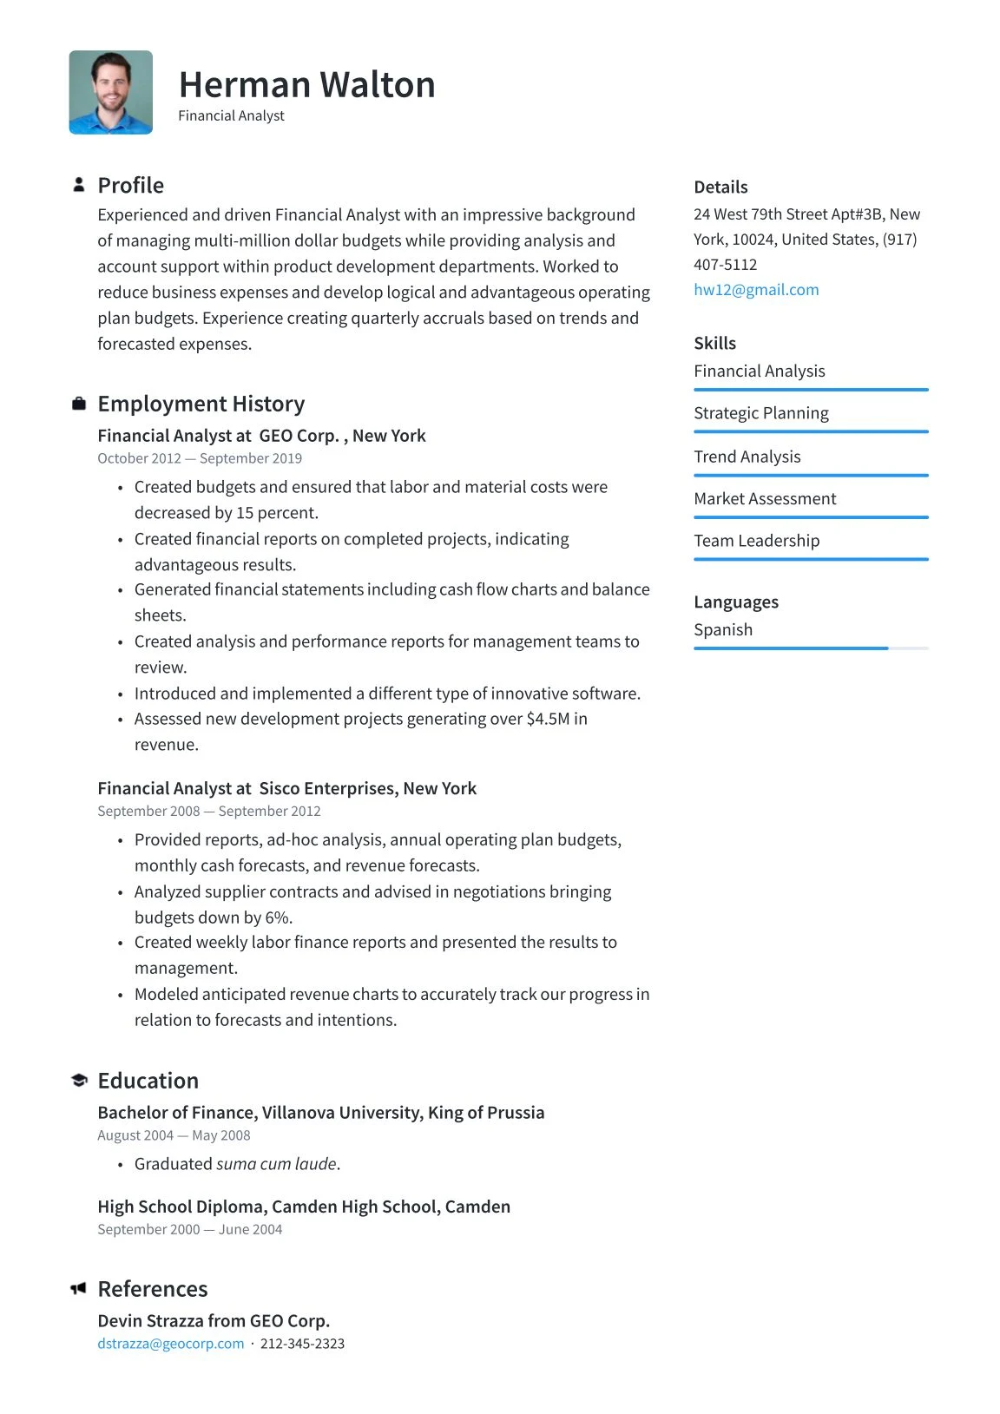 Free Resume Templates download for freshers latest